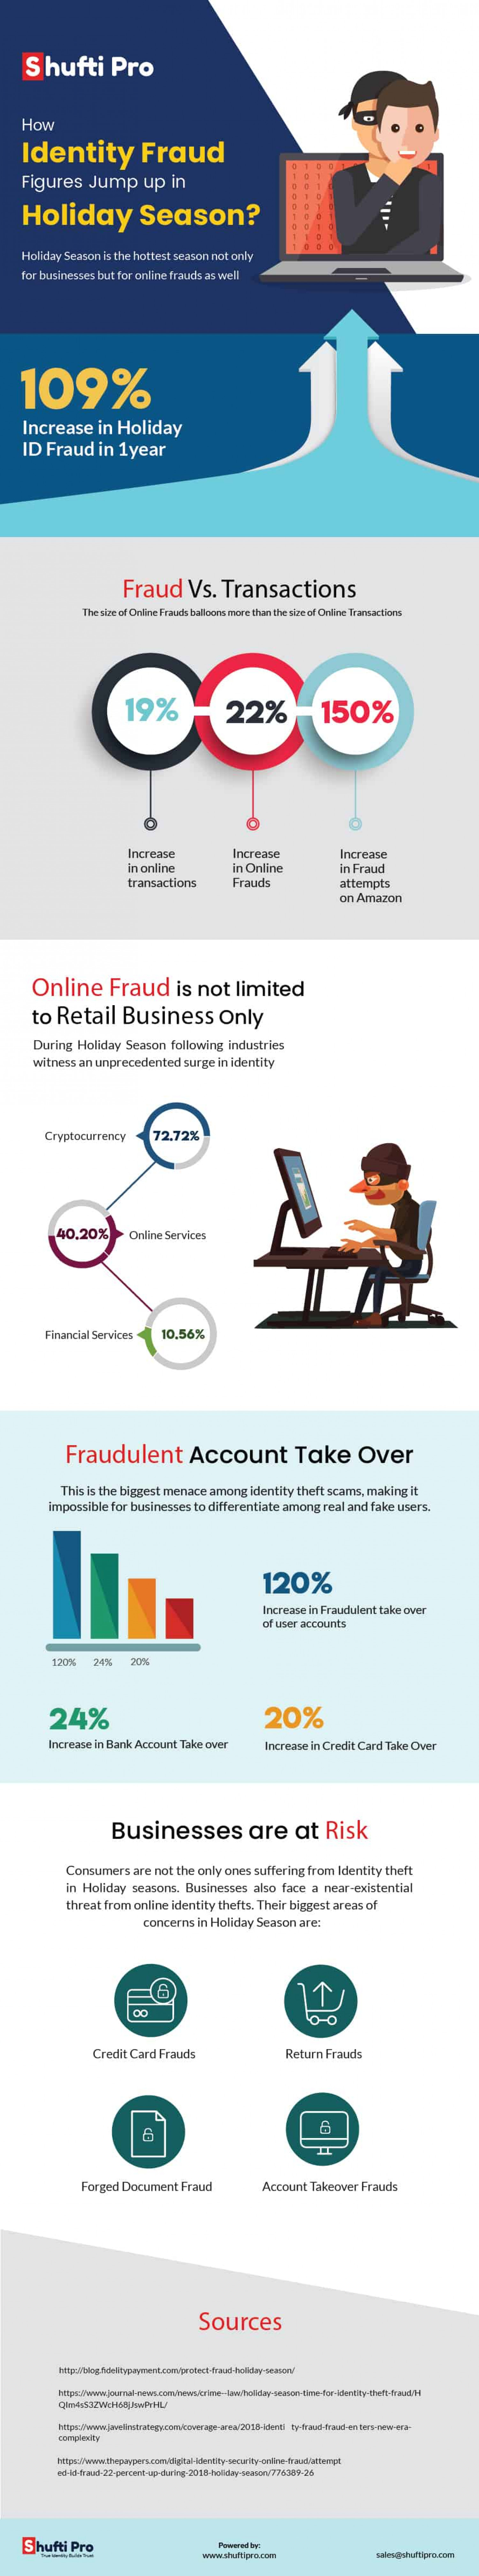 How Identity Fraud Figures Jump up in Holiday Season Infographic